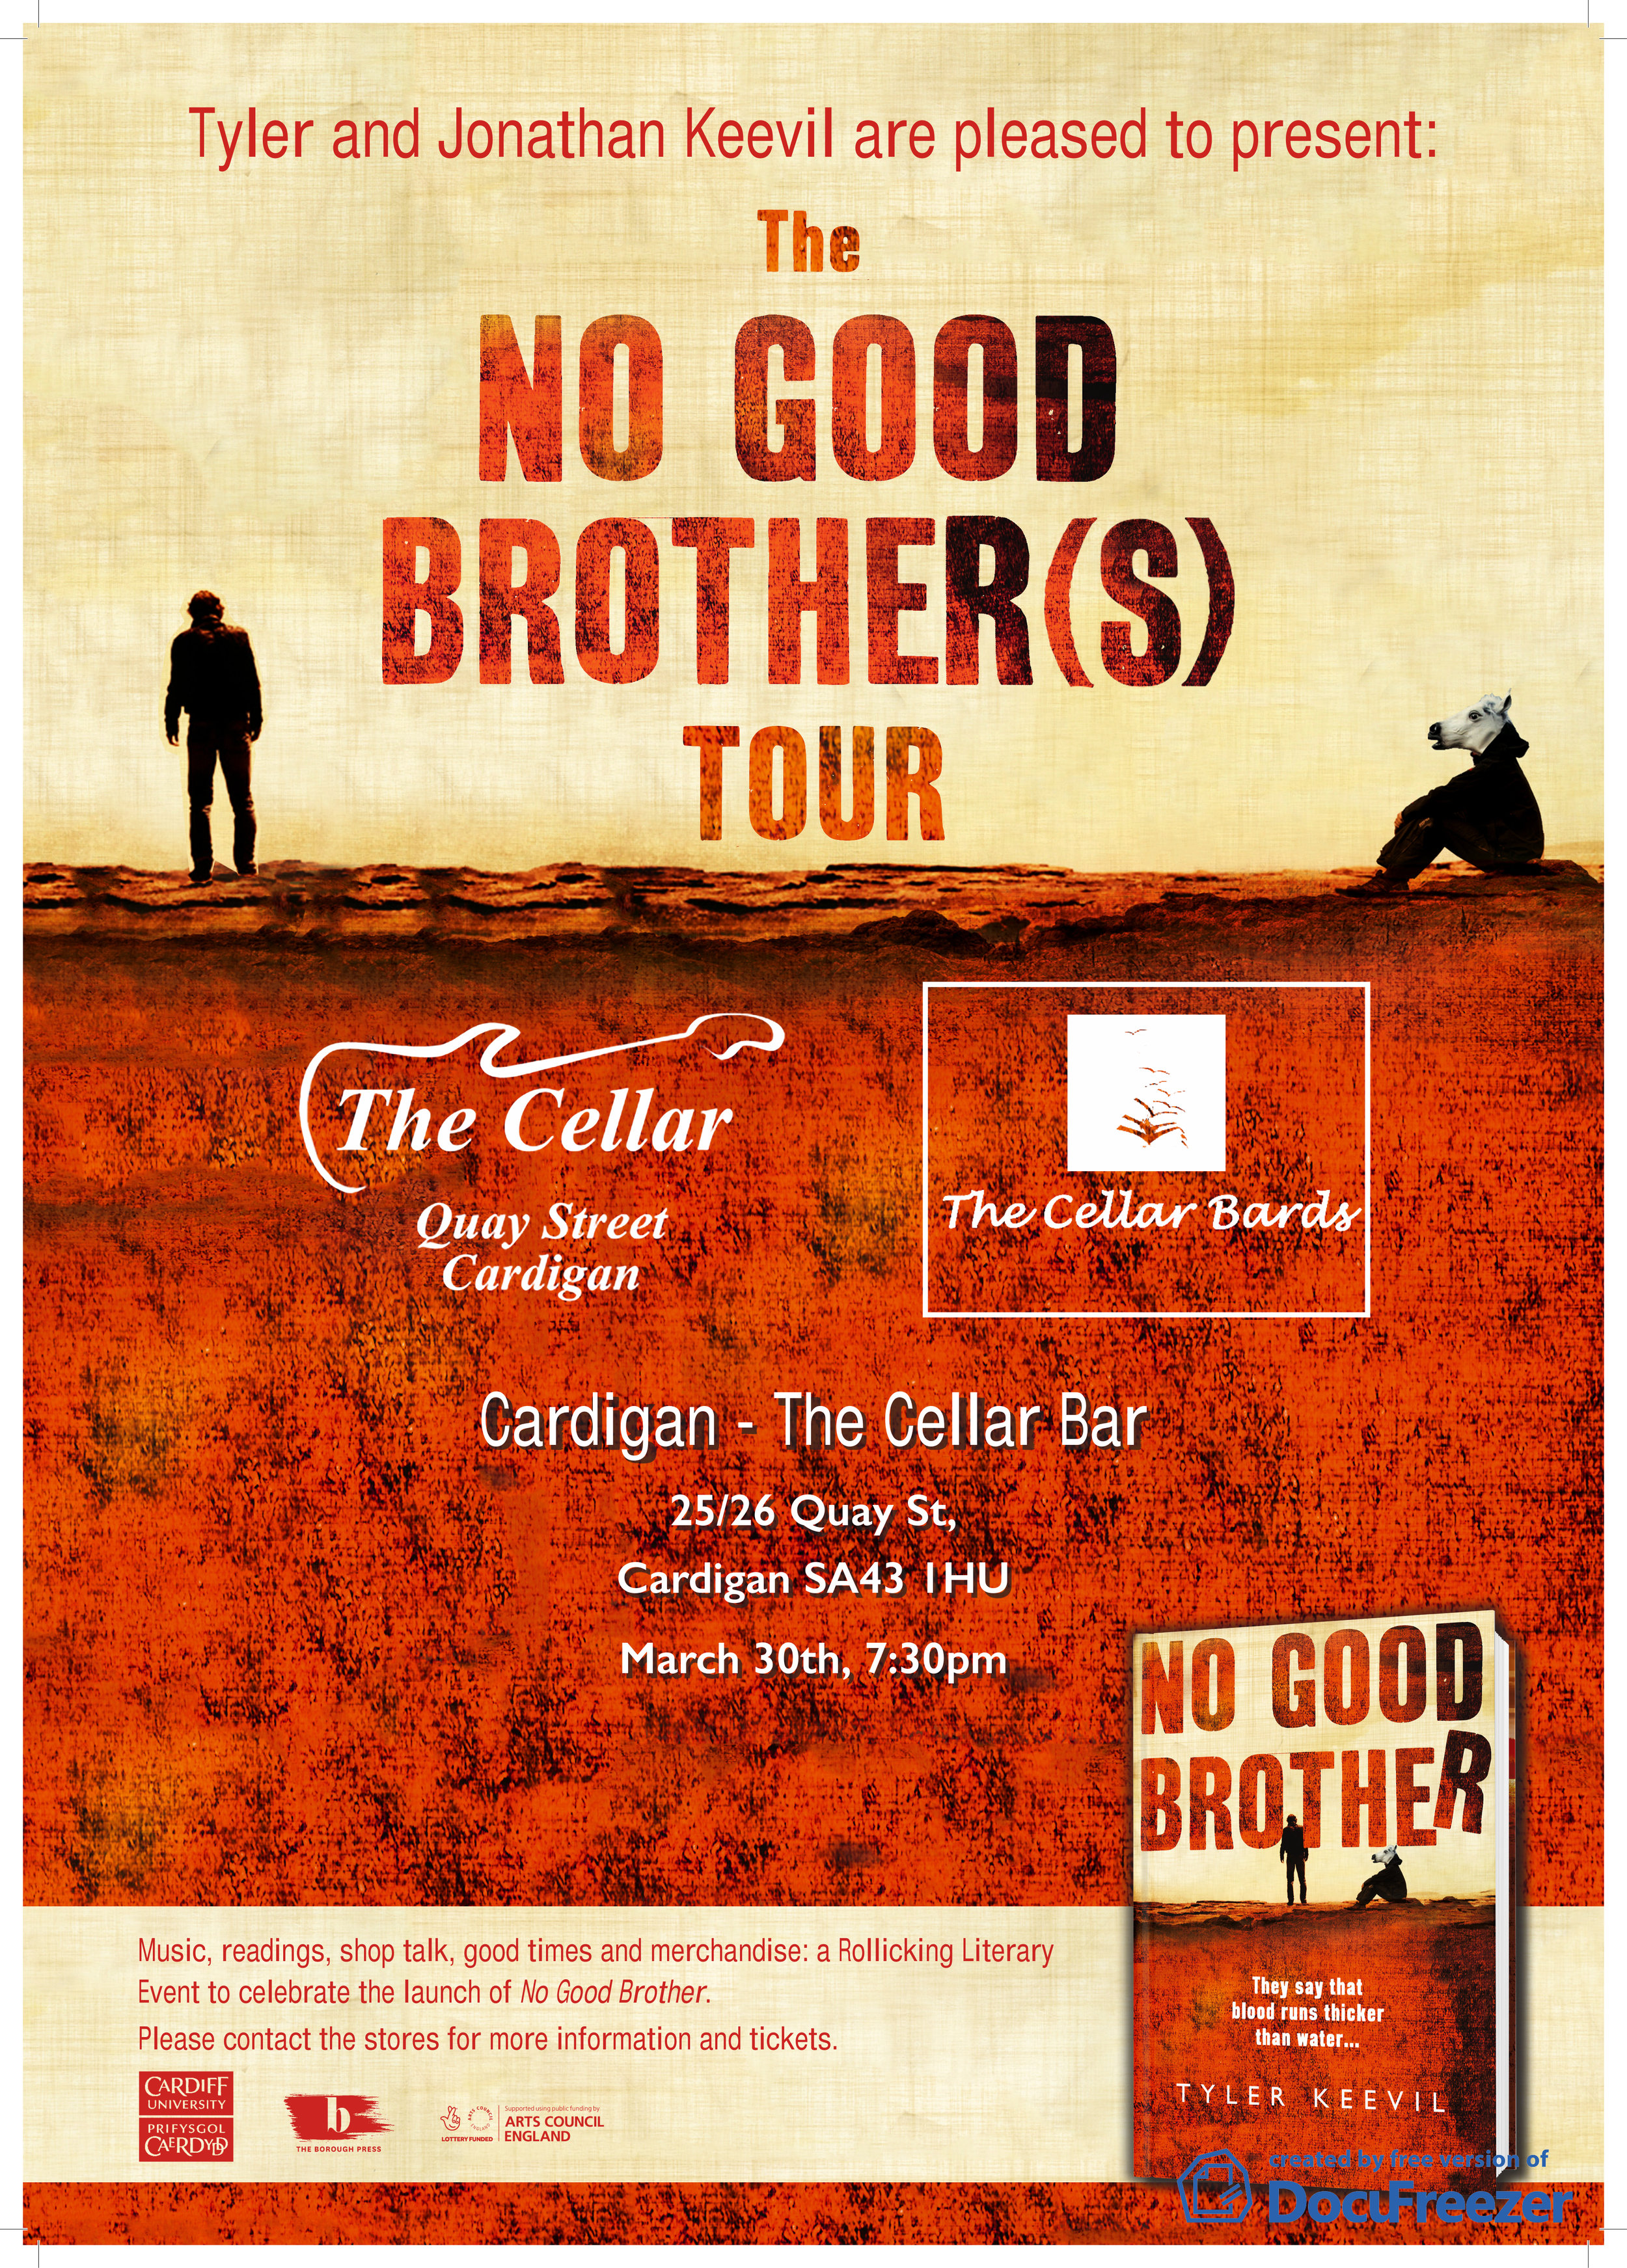 No Good Brother(s) Tour Poster Cellar Bards.jpg